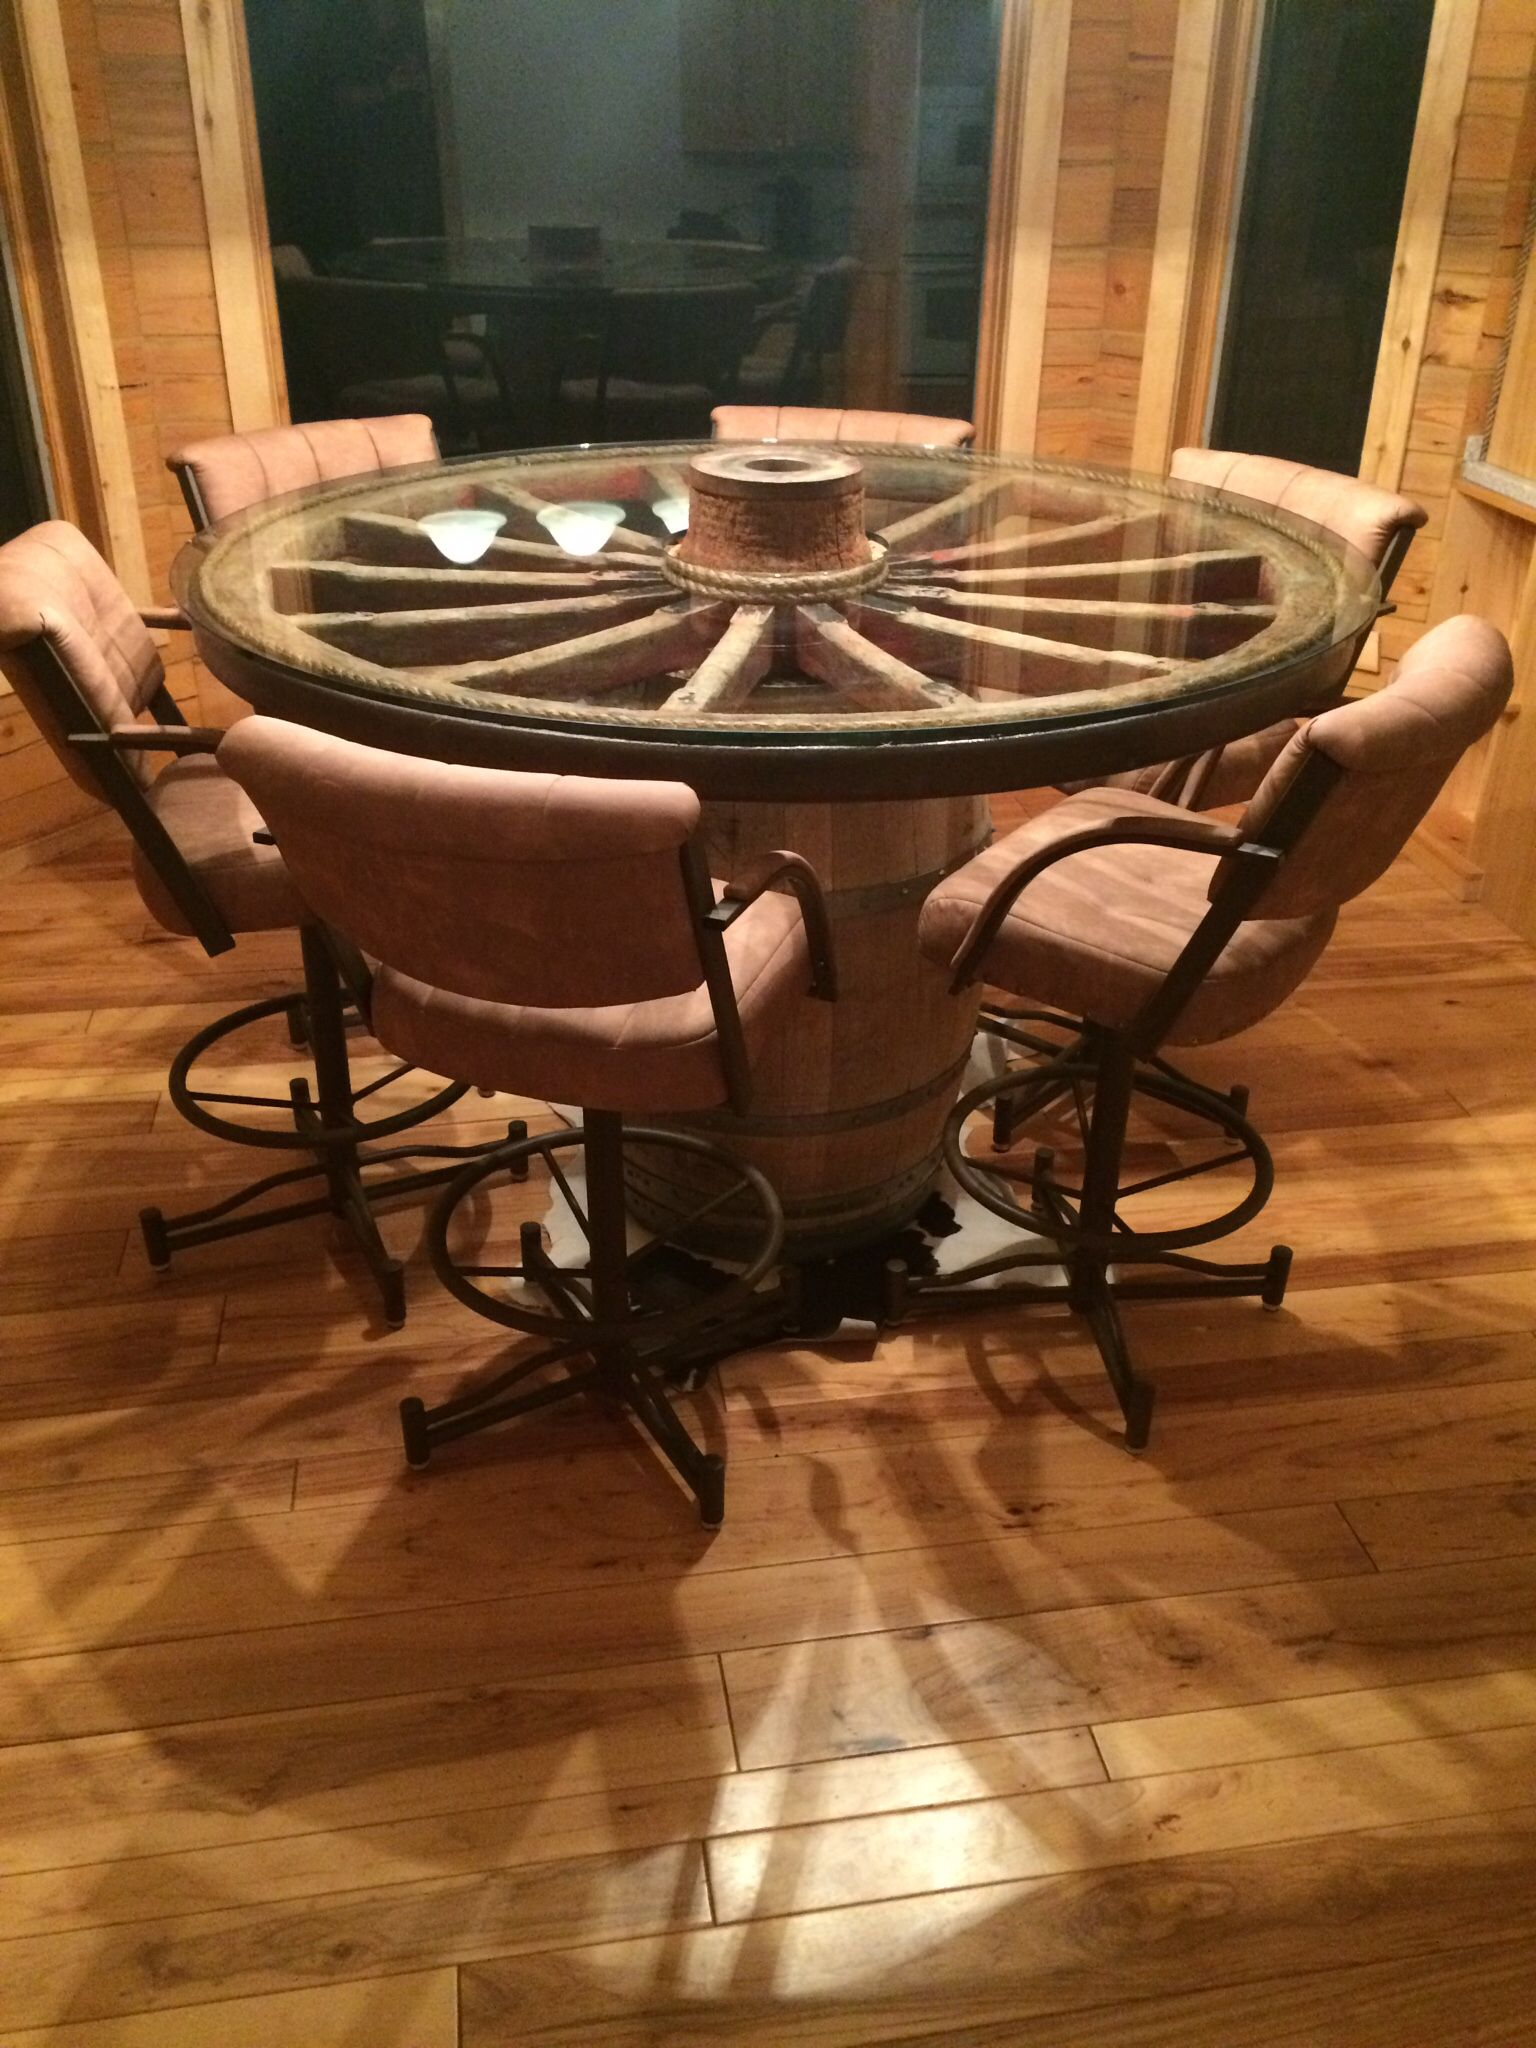 Wagon wheel dining table My House Pinterest